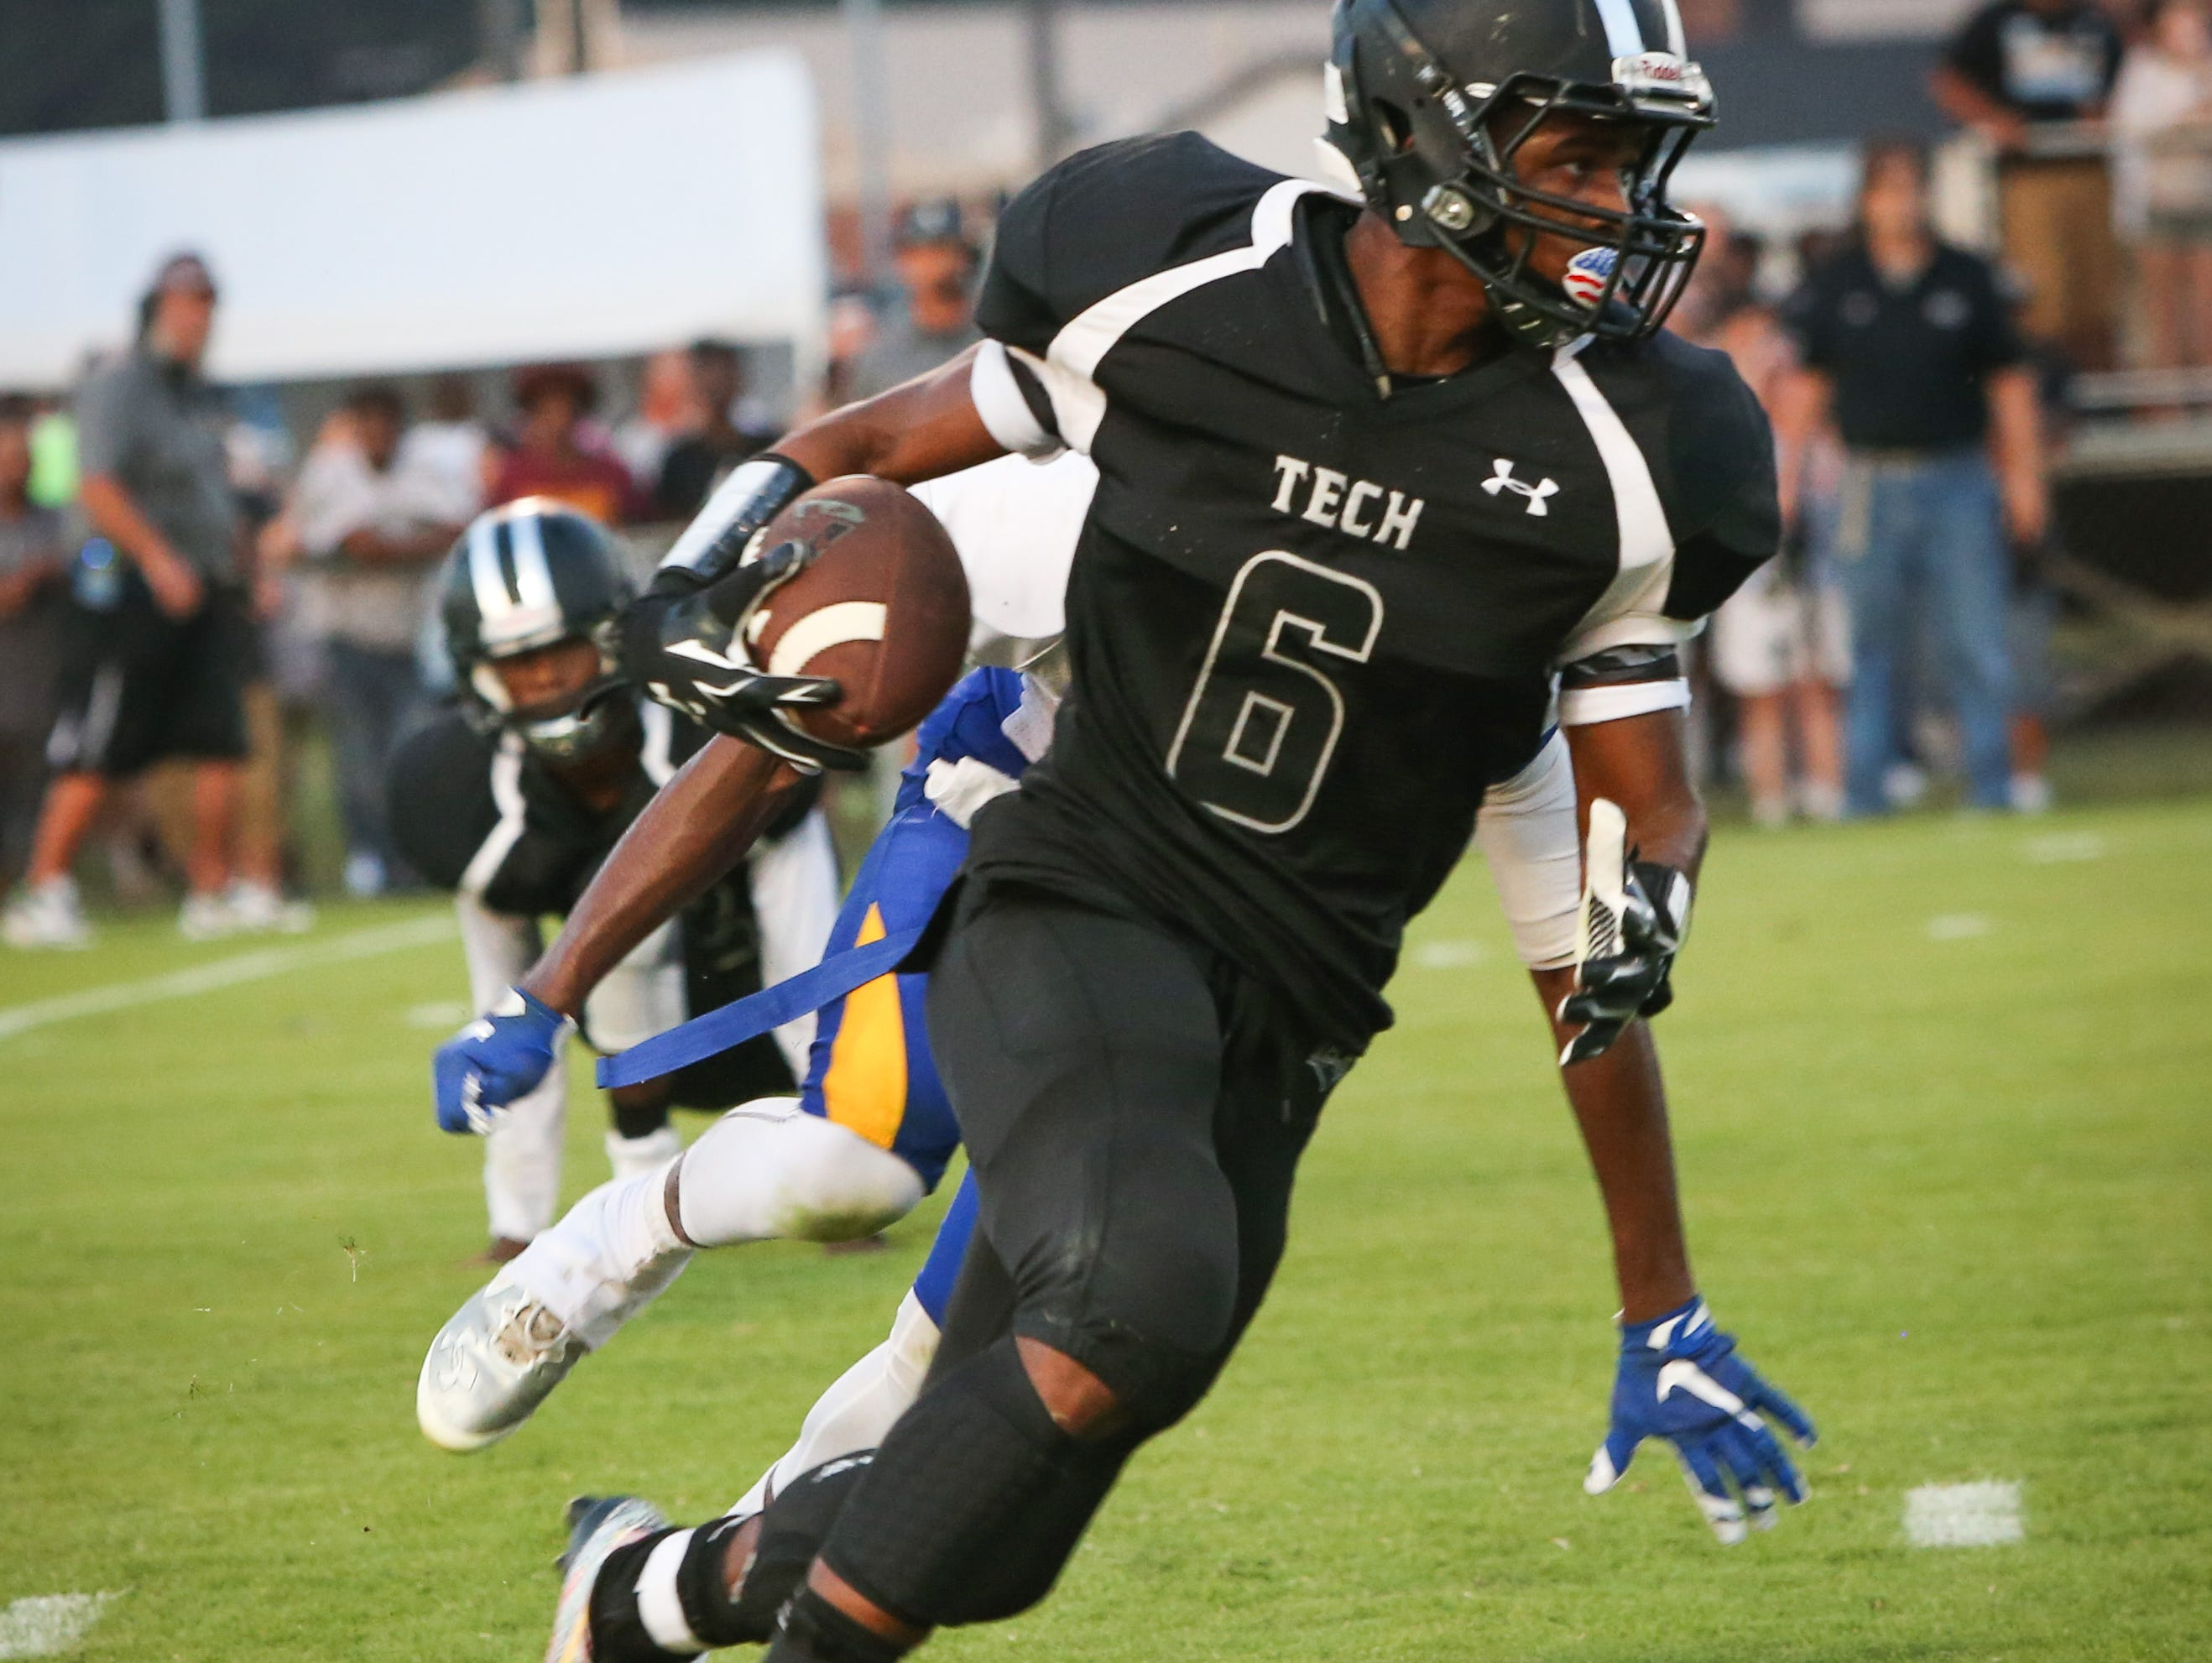 Sussex Tech senior running back Isaiah Brown runs the ball during the first quarter of the DFRC Kickoff Classic at Sussex Tech Thursday. Brown had six touchdown's in the first half.